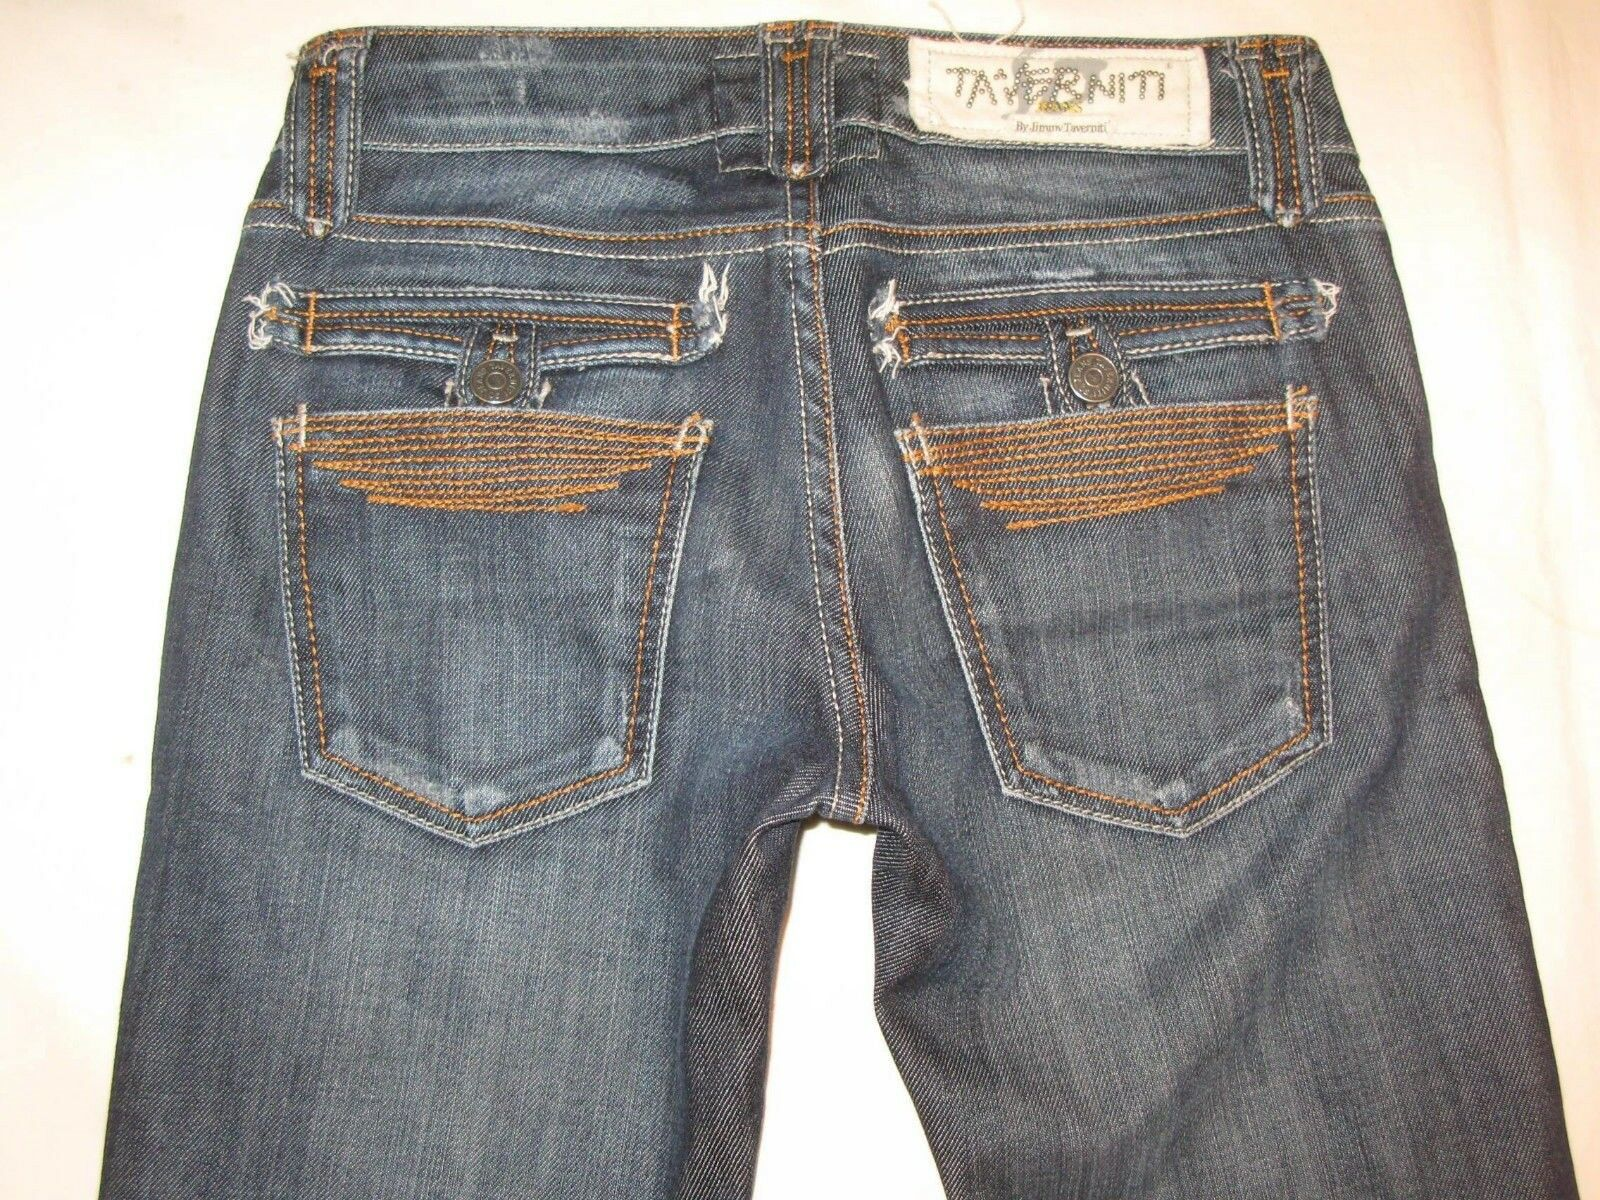 Taverniti Jeans Janis 18 Low Slim Bootcut Dark Distressed Sz 24 -Fit Like sz 26